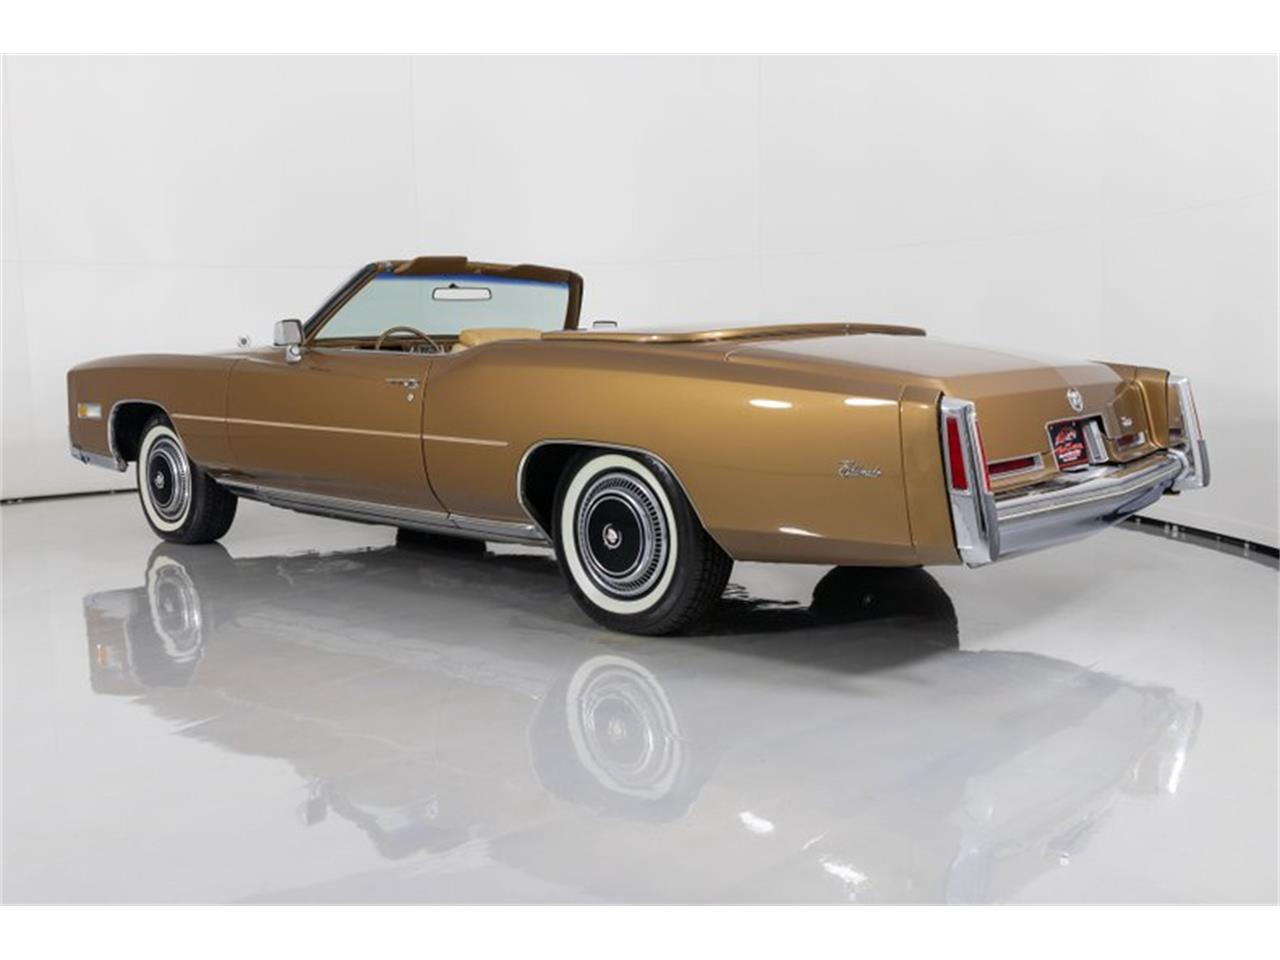 1976 Cadillac Eldorado (CC-1422475) for sale in St. Charles, Missouri